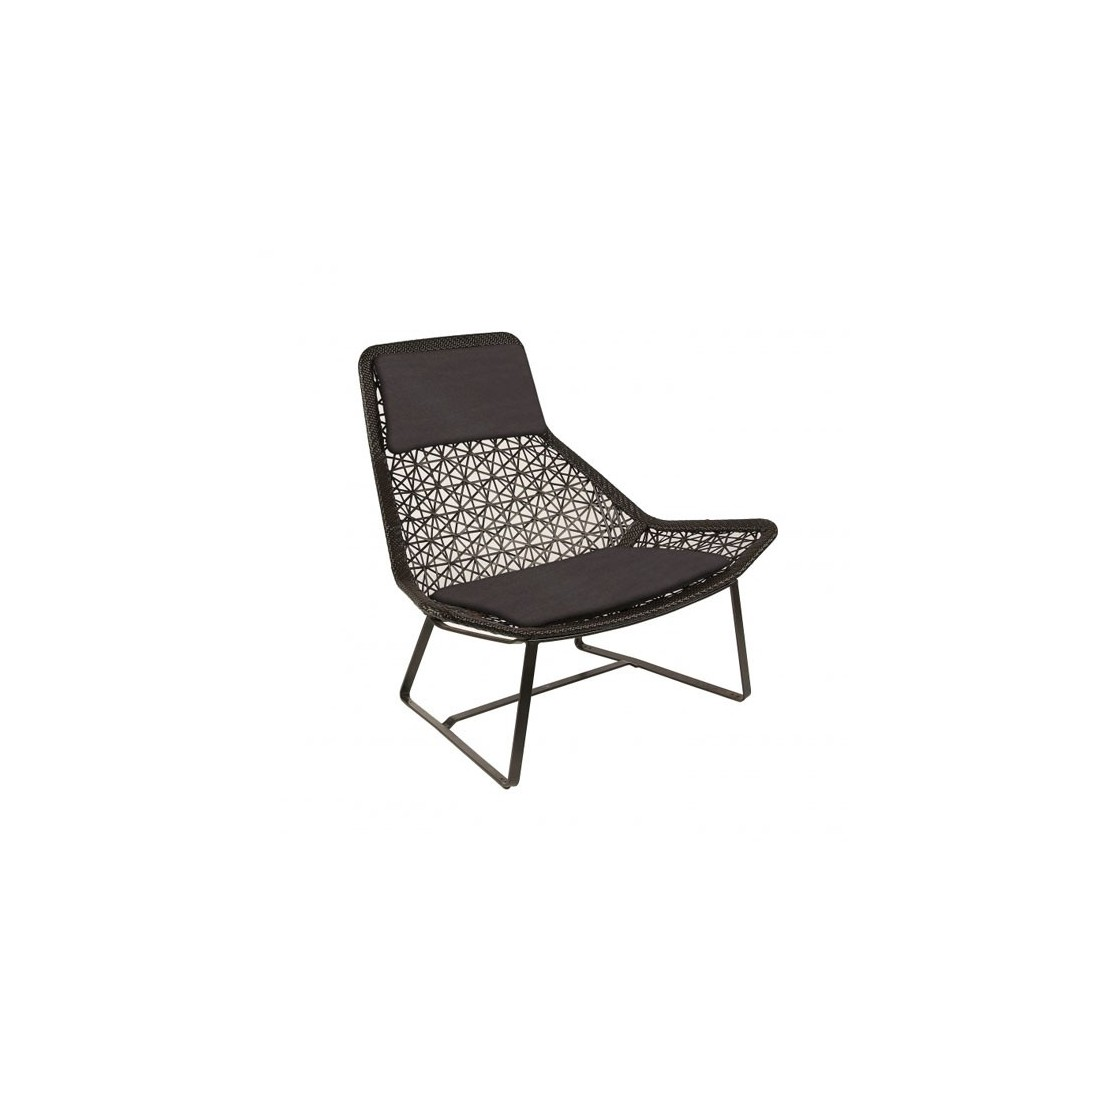 Fauteuil Exterieur Detente Chaise Dtente Extrieur Good Oviala Chaise With Chaise